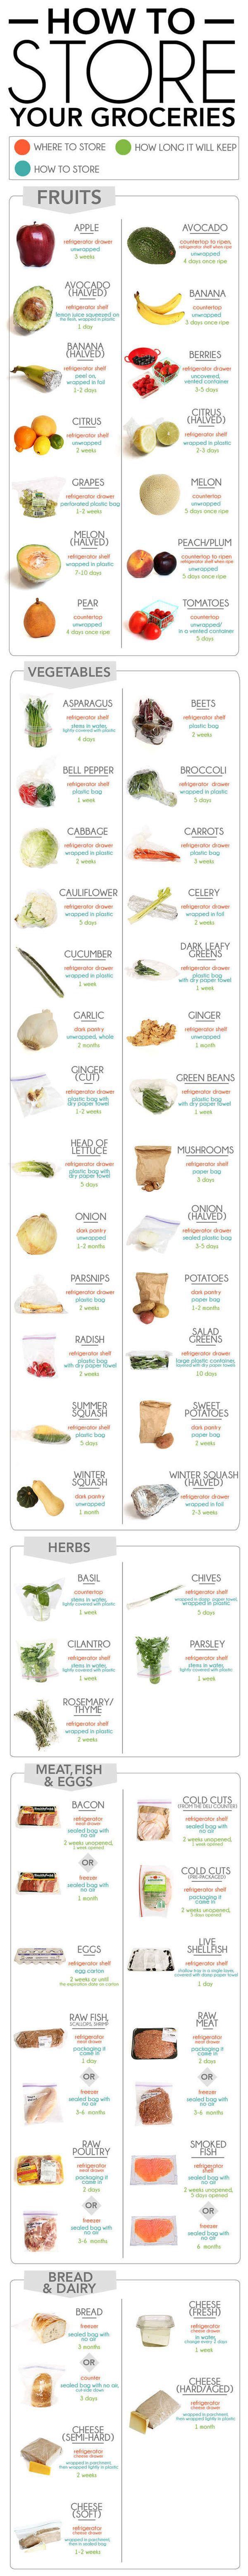 How to (properly) store your perishable groceries!